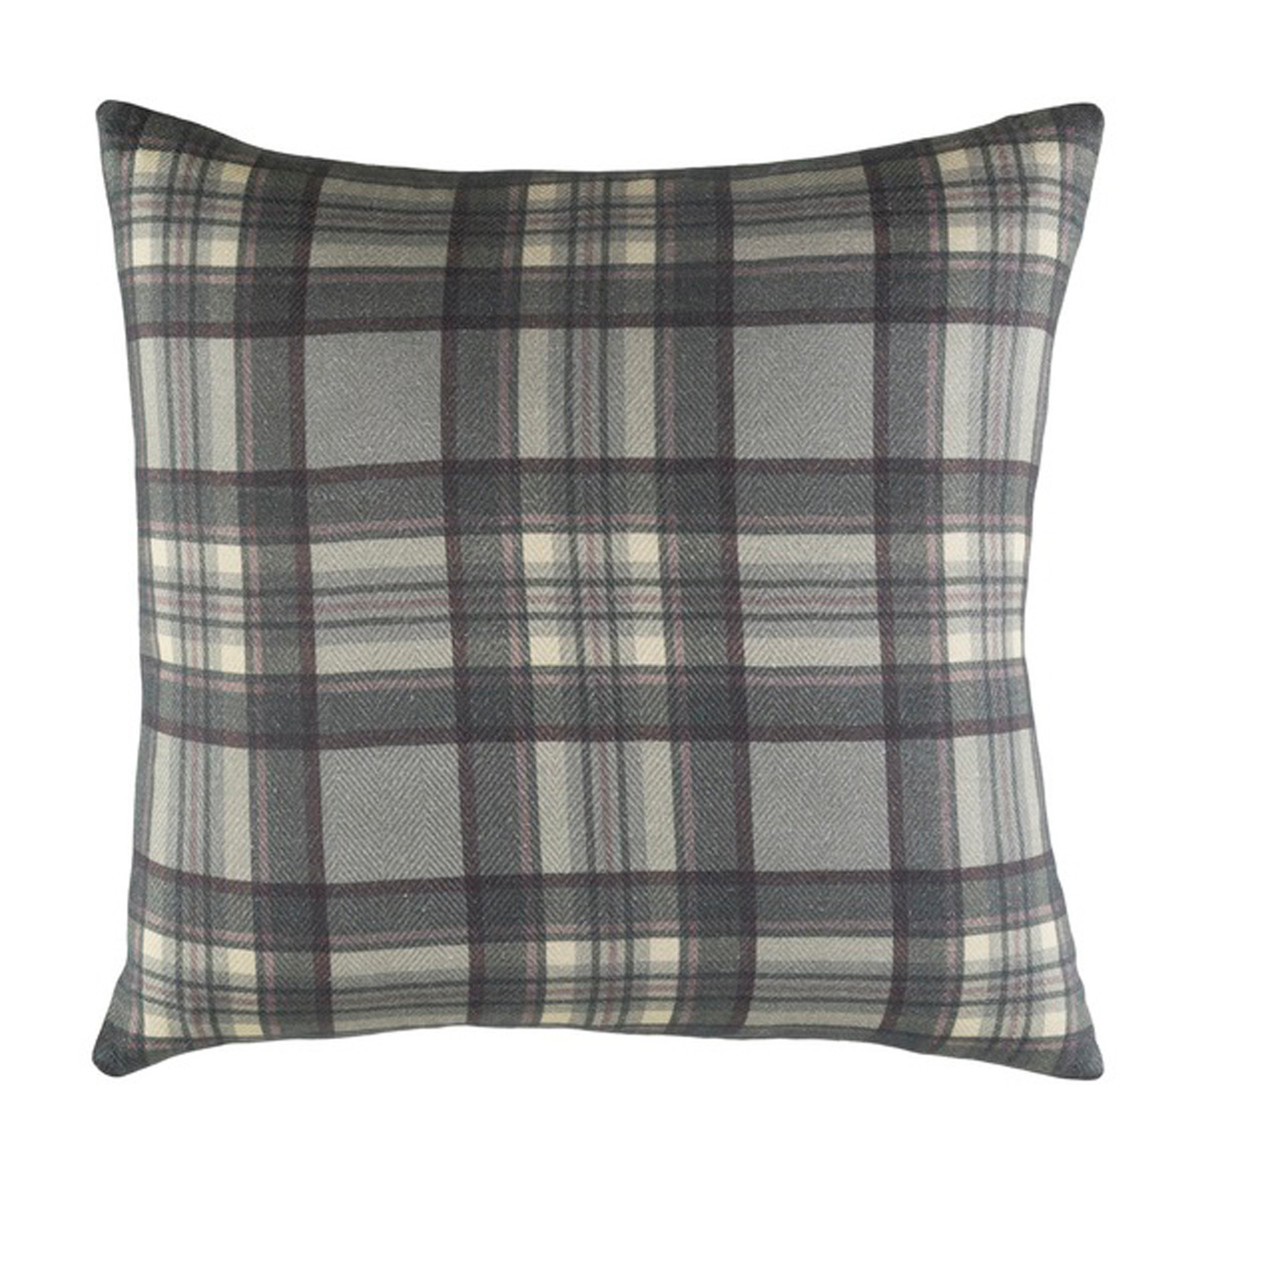 18 gray and green plaid digitally printed throw pillow